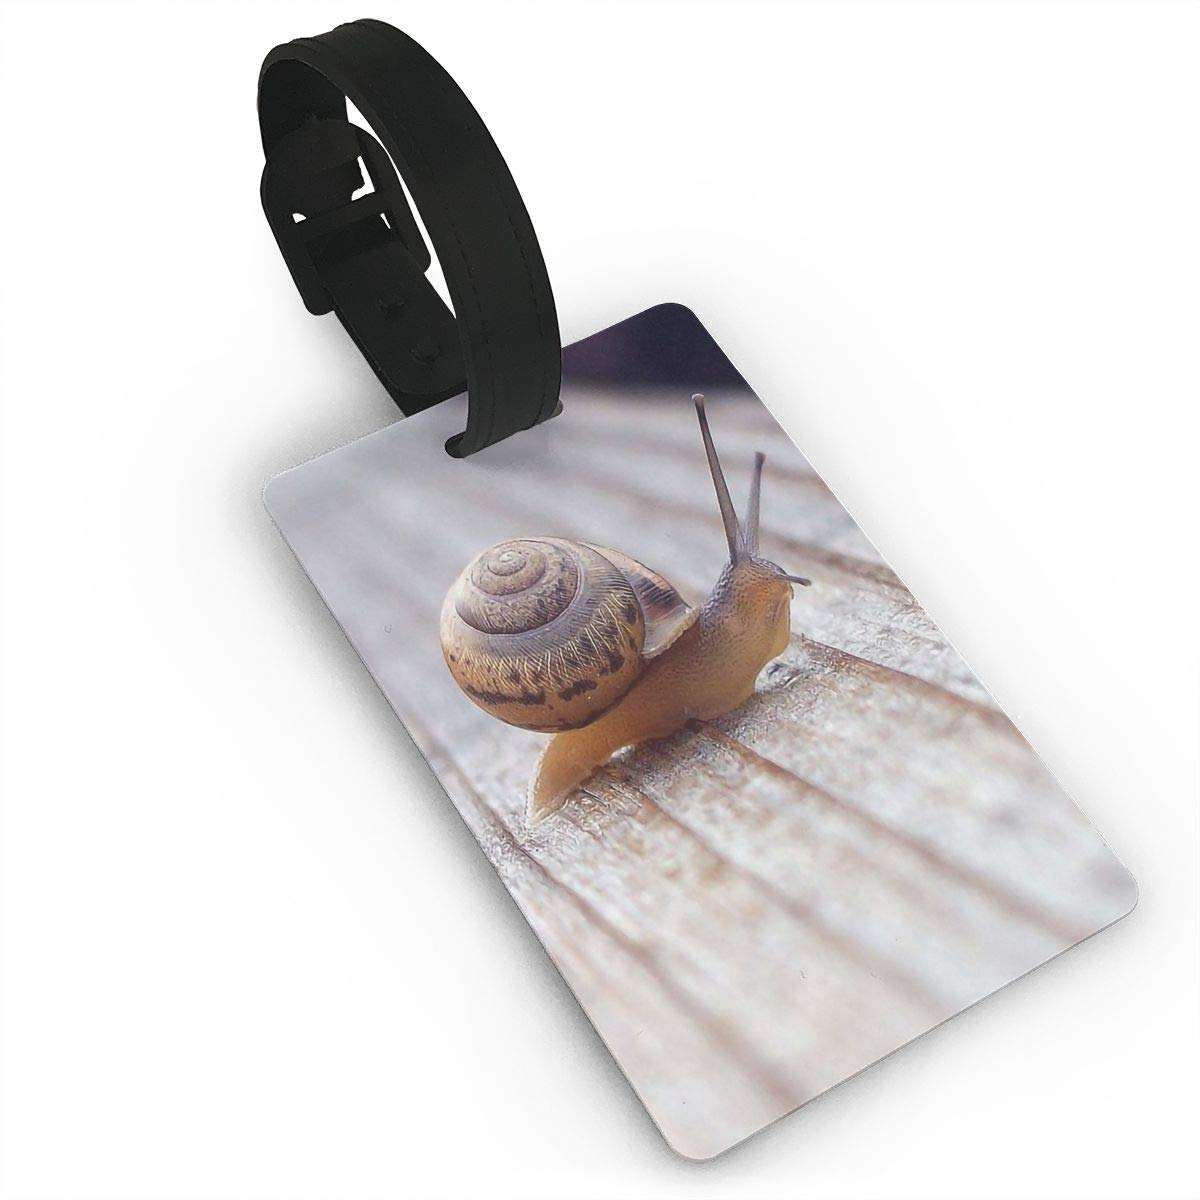 Snail Baggage Tag For Travel Bag Suitcase Accessories 2 Pack Luggage Tags